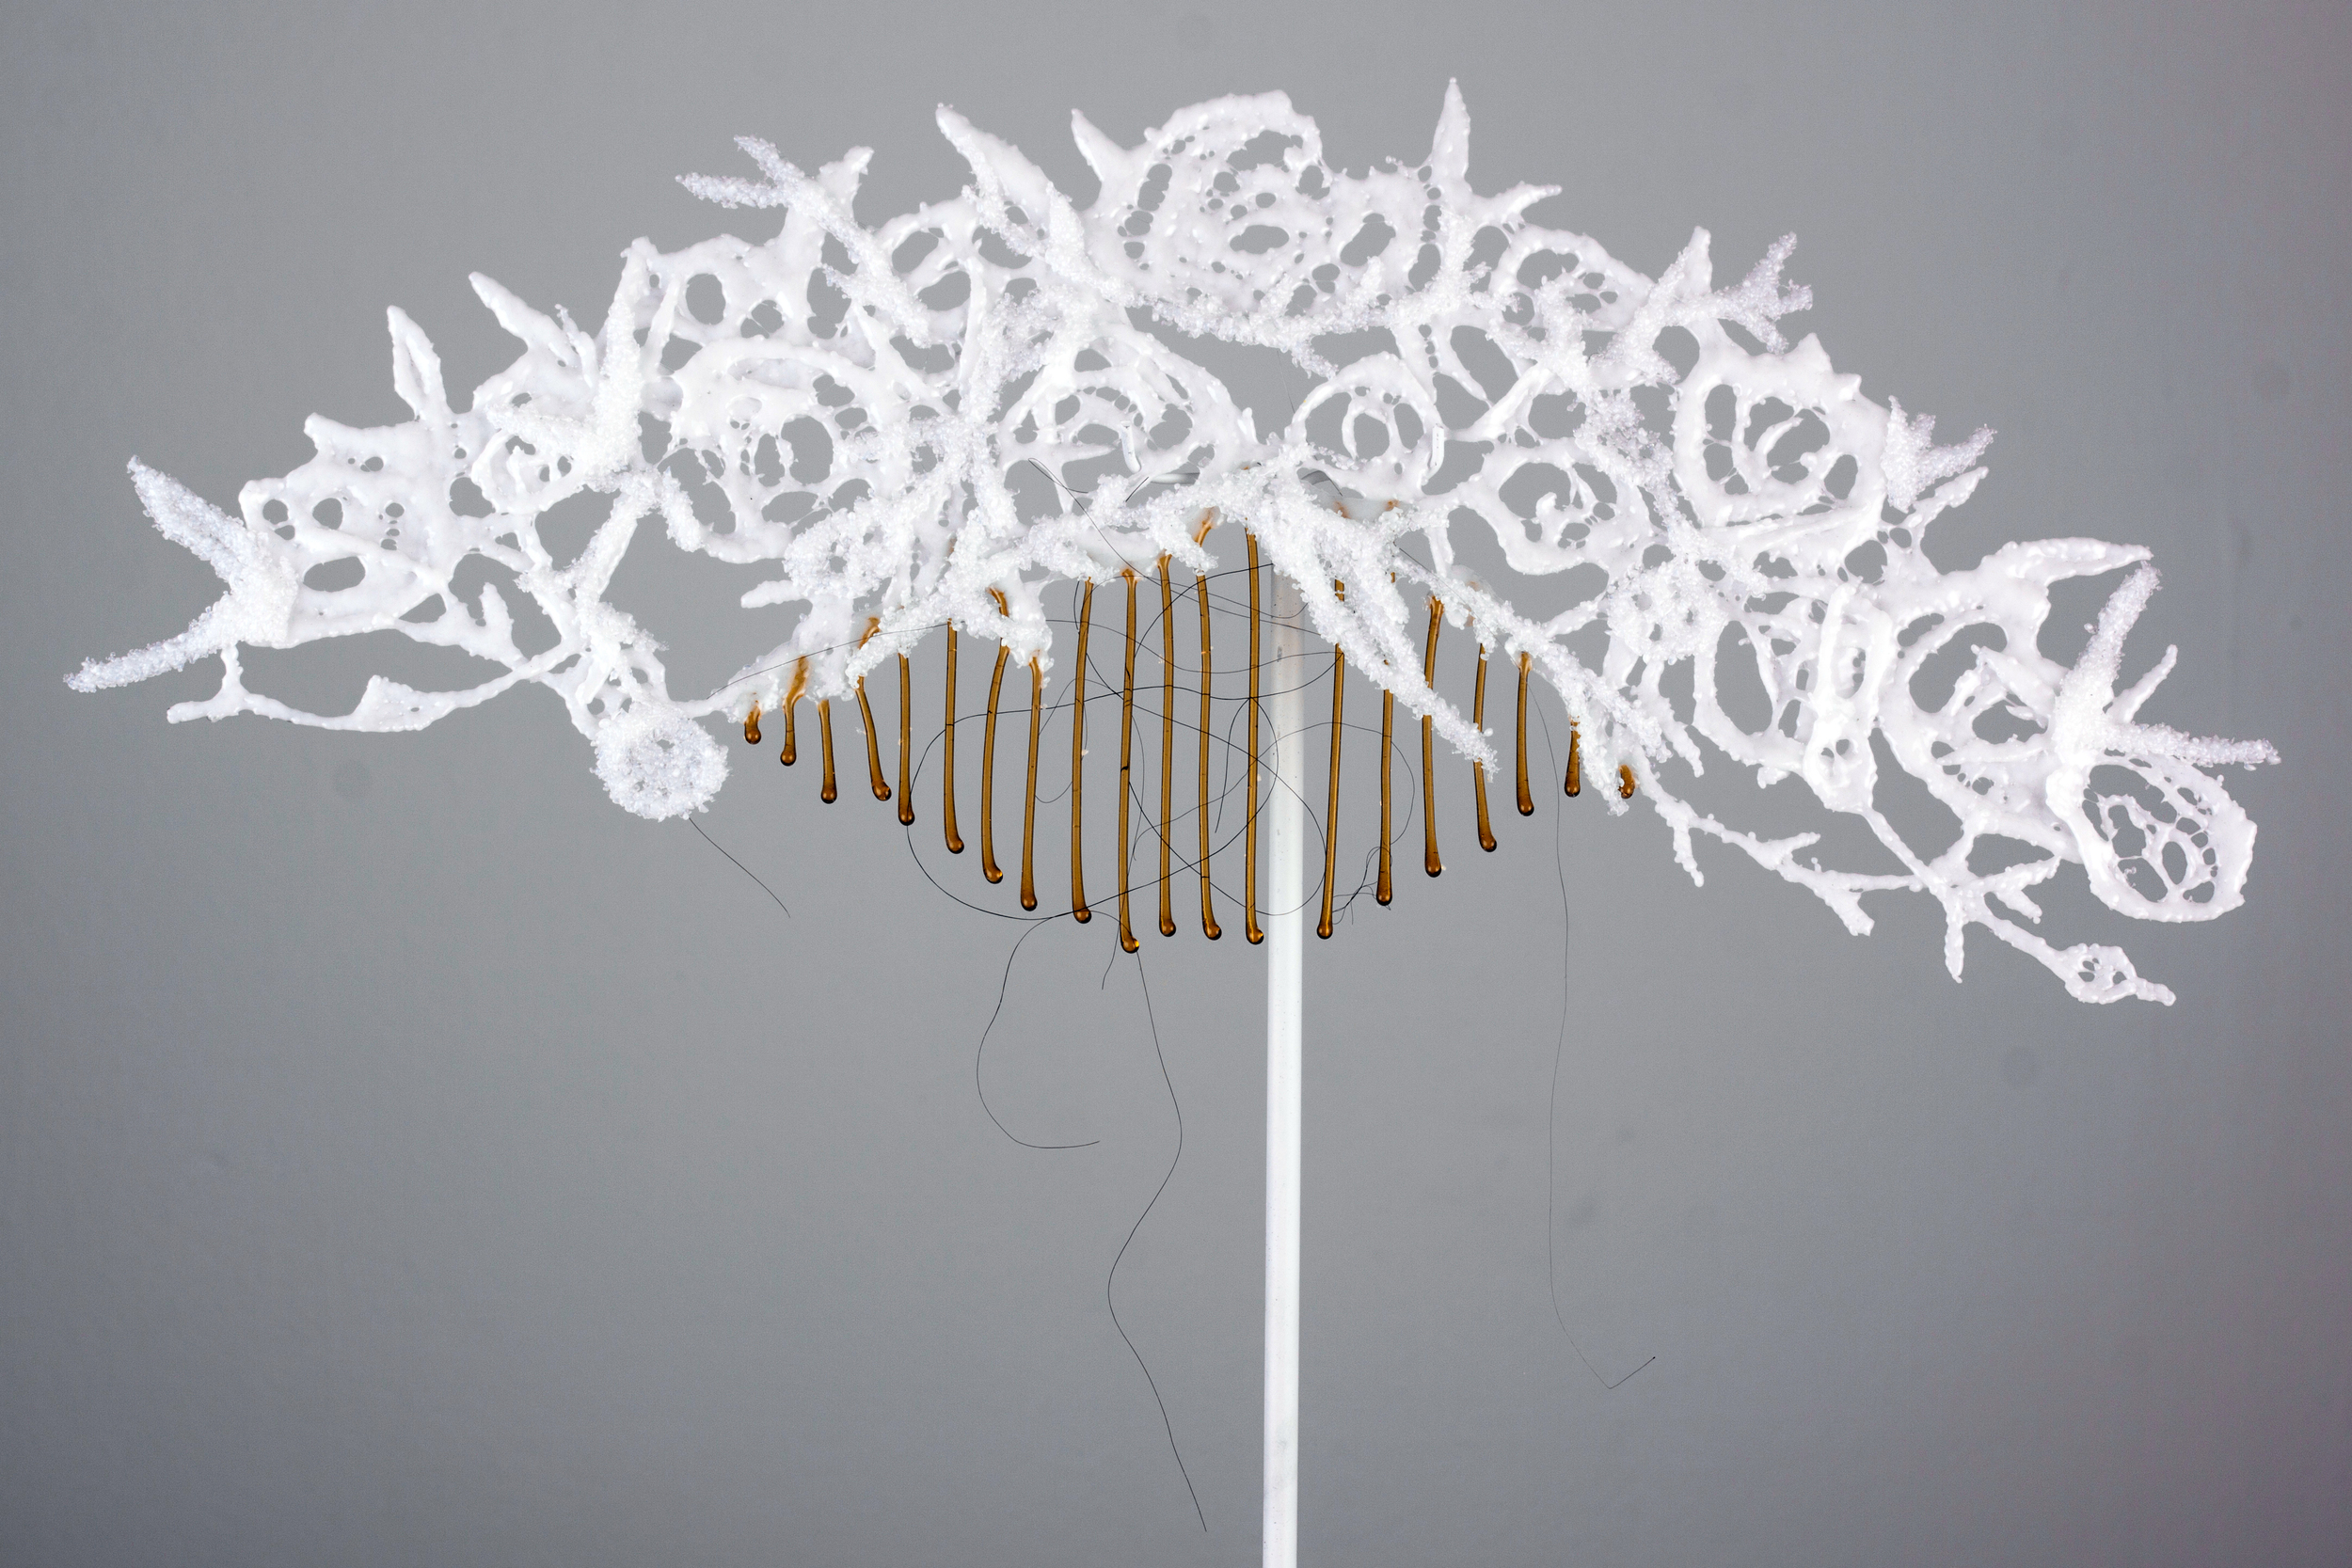 Large White Comb (Anna) KATE CLEMENTS, 2013 PARAGRAPH GALLERY SHOW, FULL SIZED JPG-12.jpg